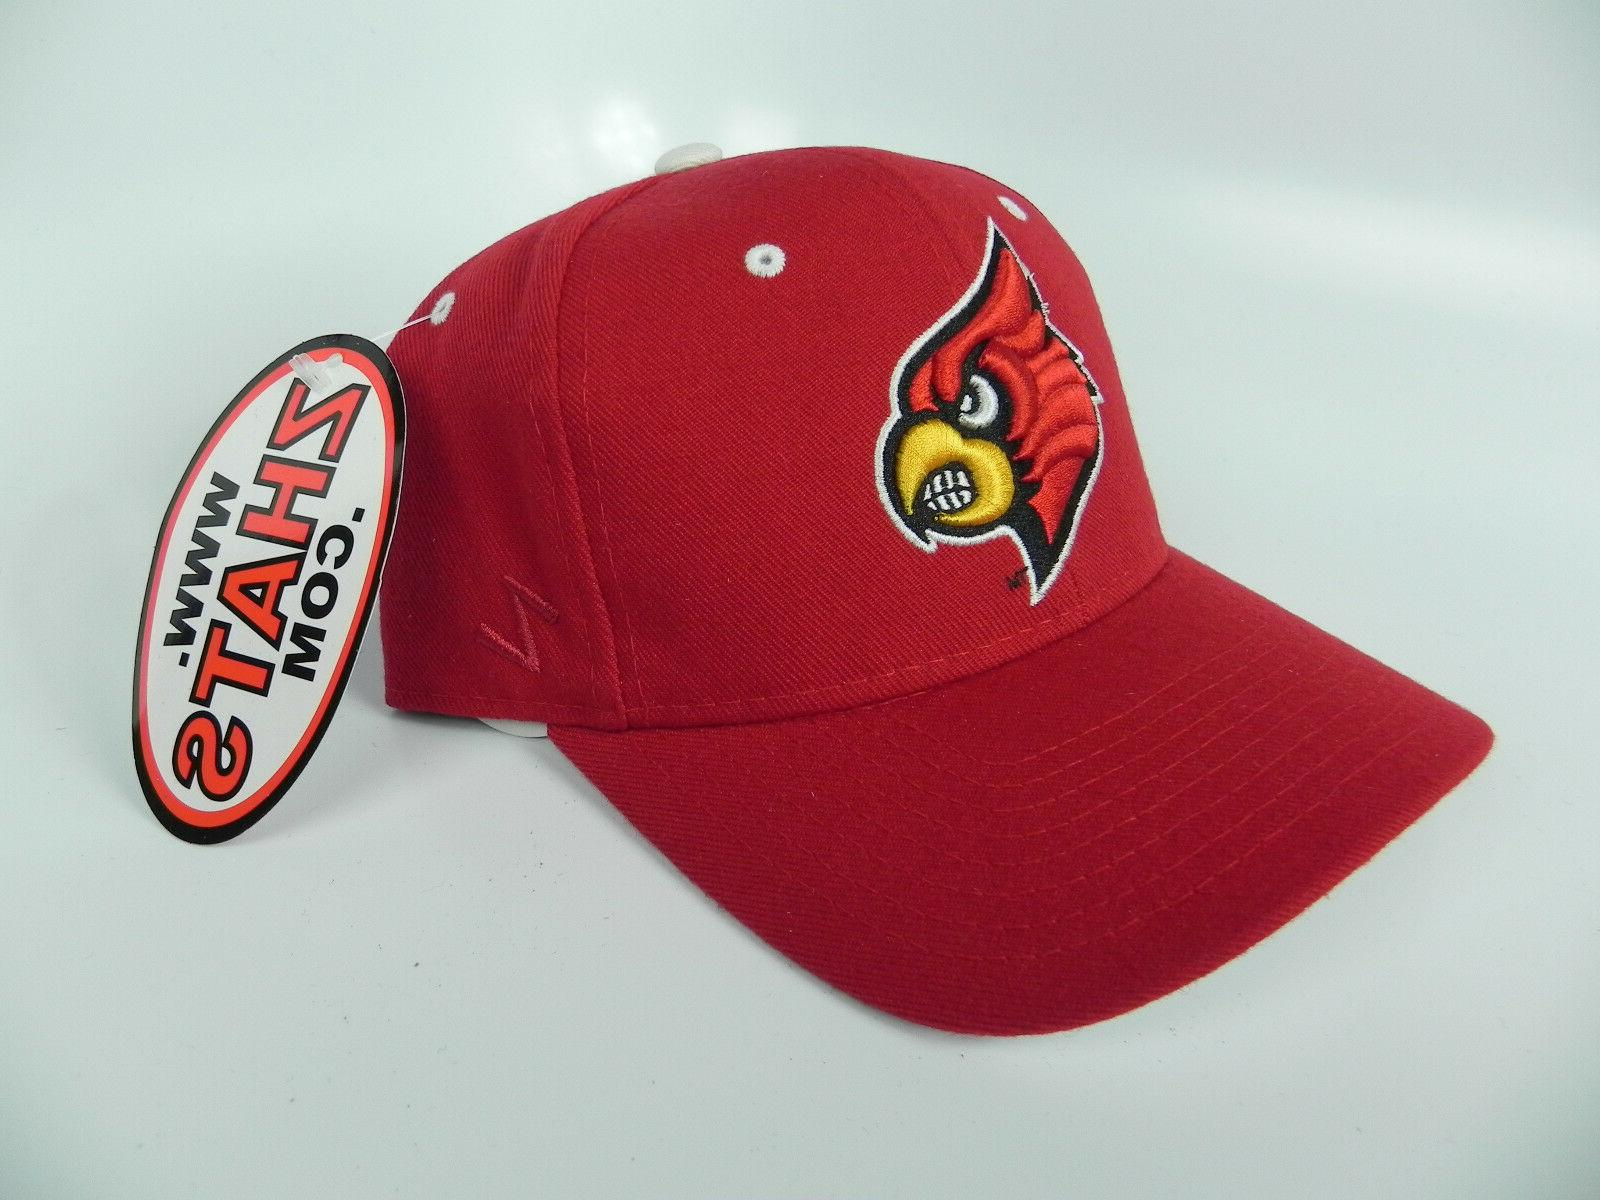 LOUISVILLE VINTAGE FITTED SIZED ZEPHYR DH HAT